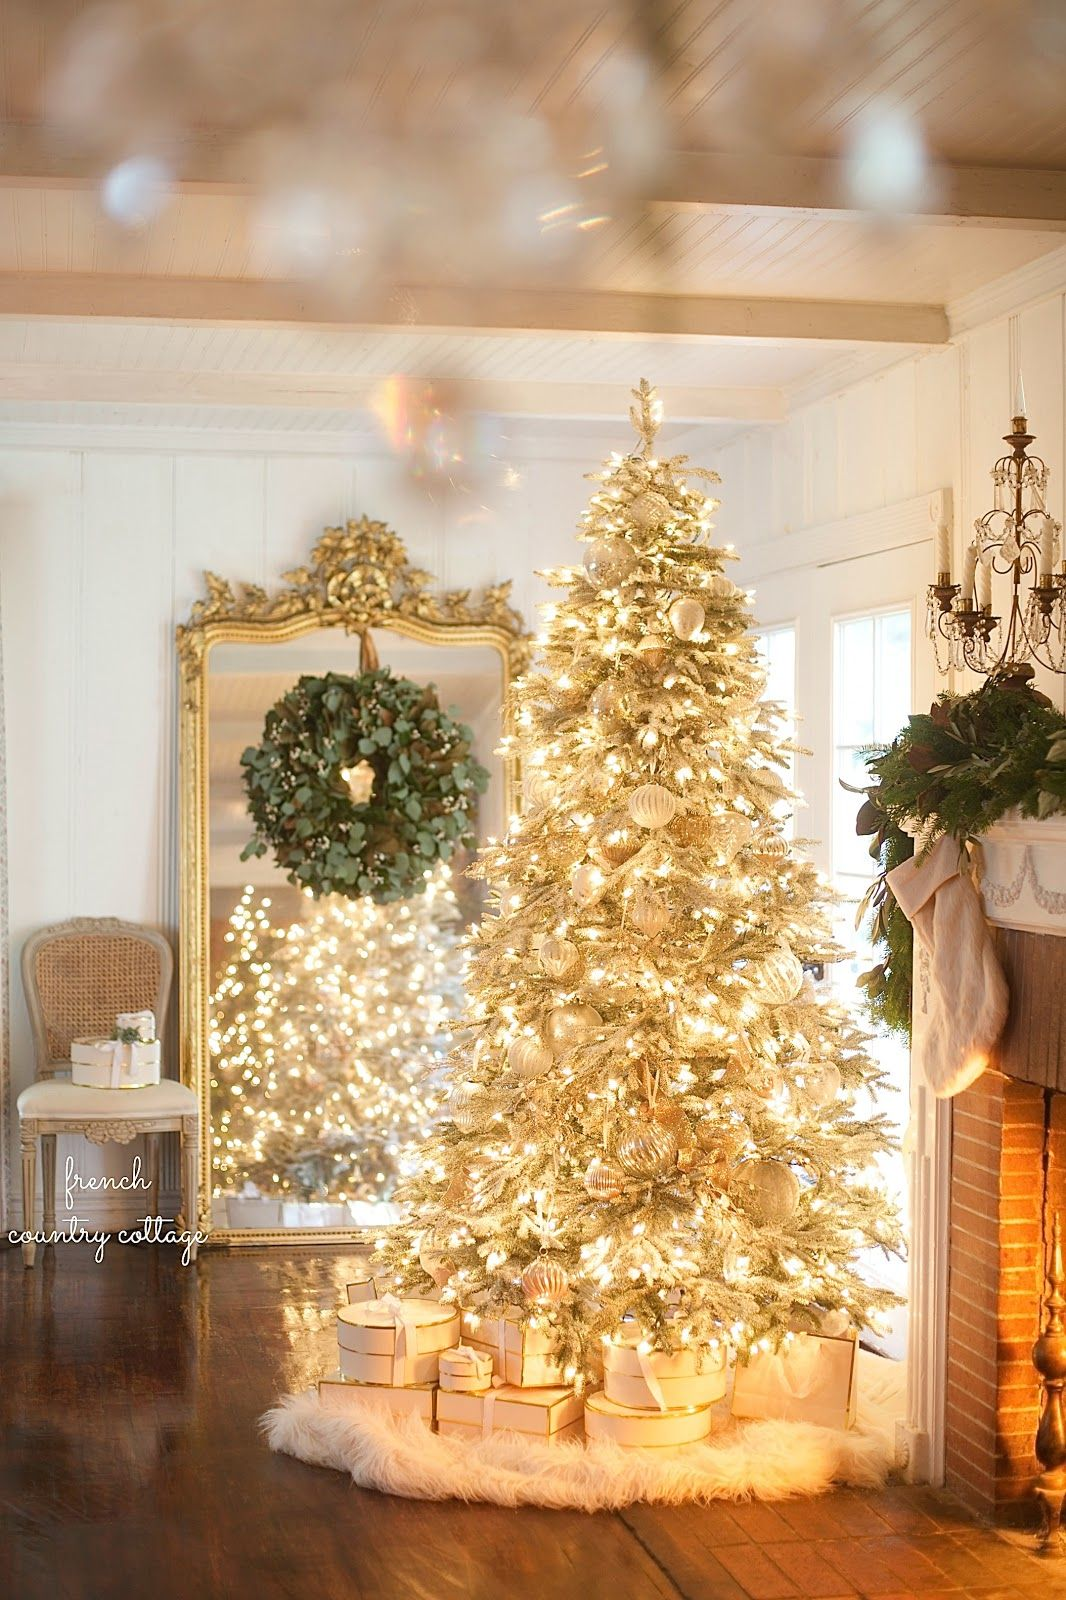 3 Classic Color Themes for Your Christmas Tree | CHRISTMAS ...